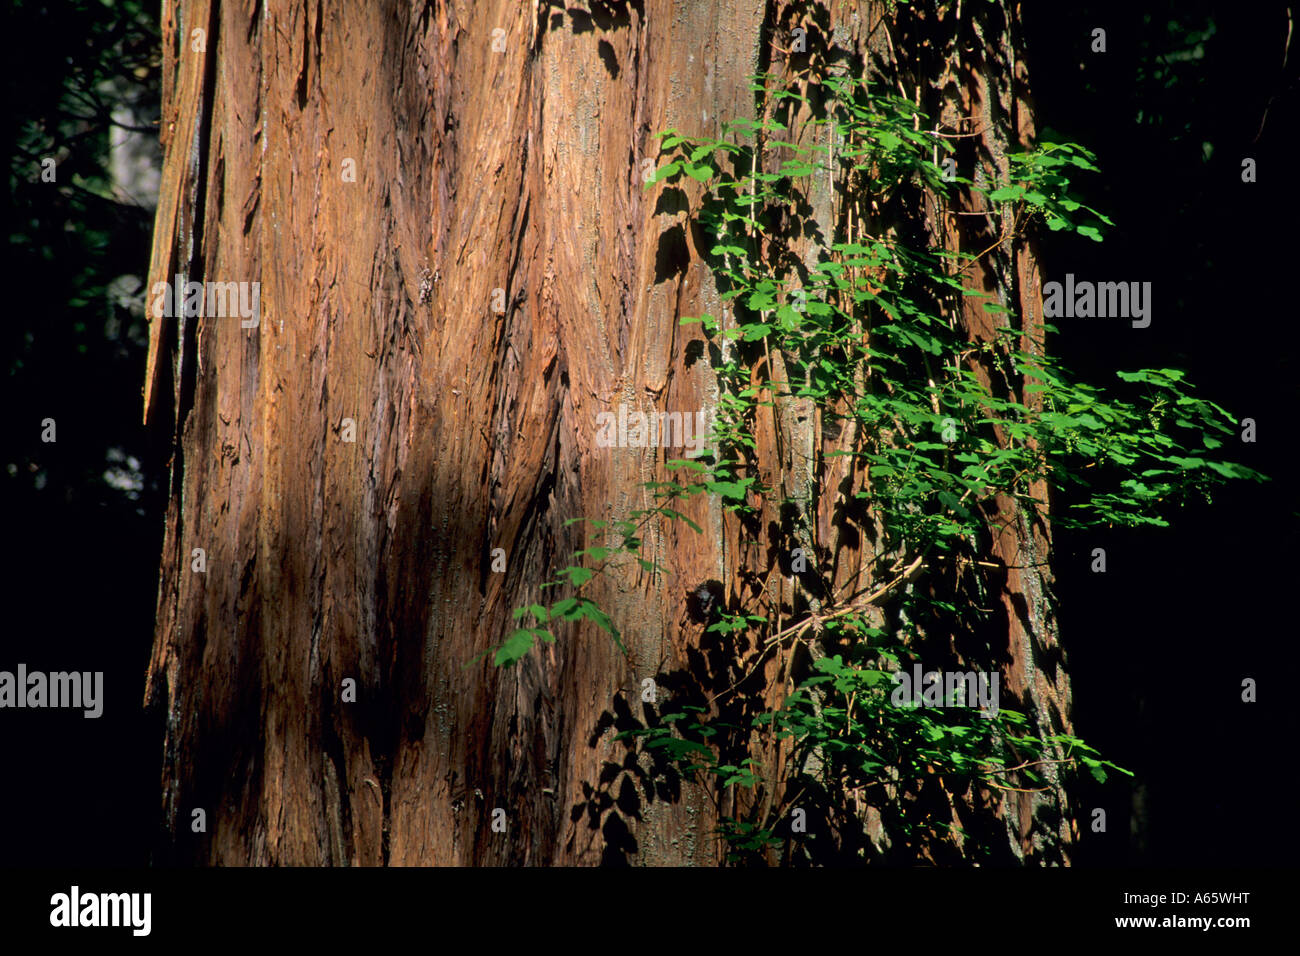 Redwood Tree Armstrong Redwoods State Reserve Sonoma County California - Stock Image